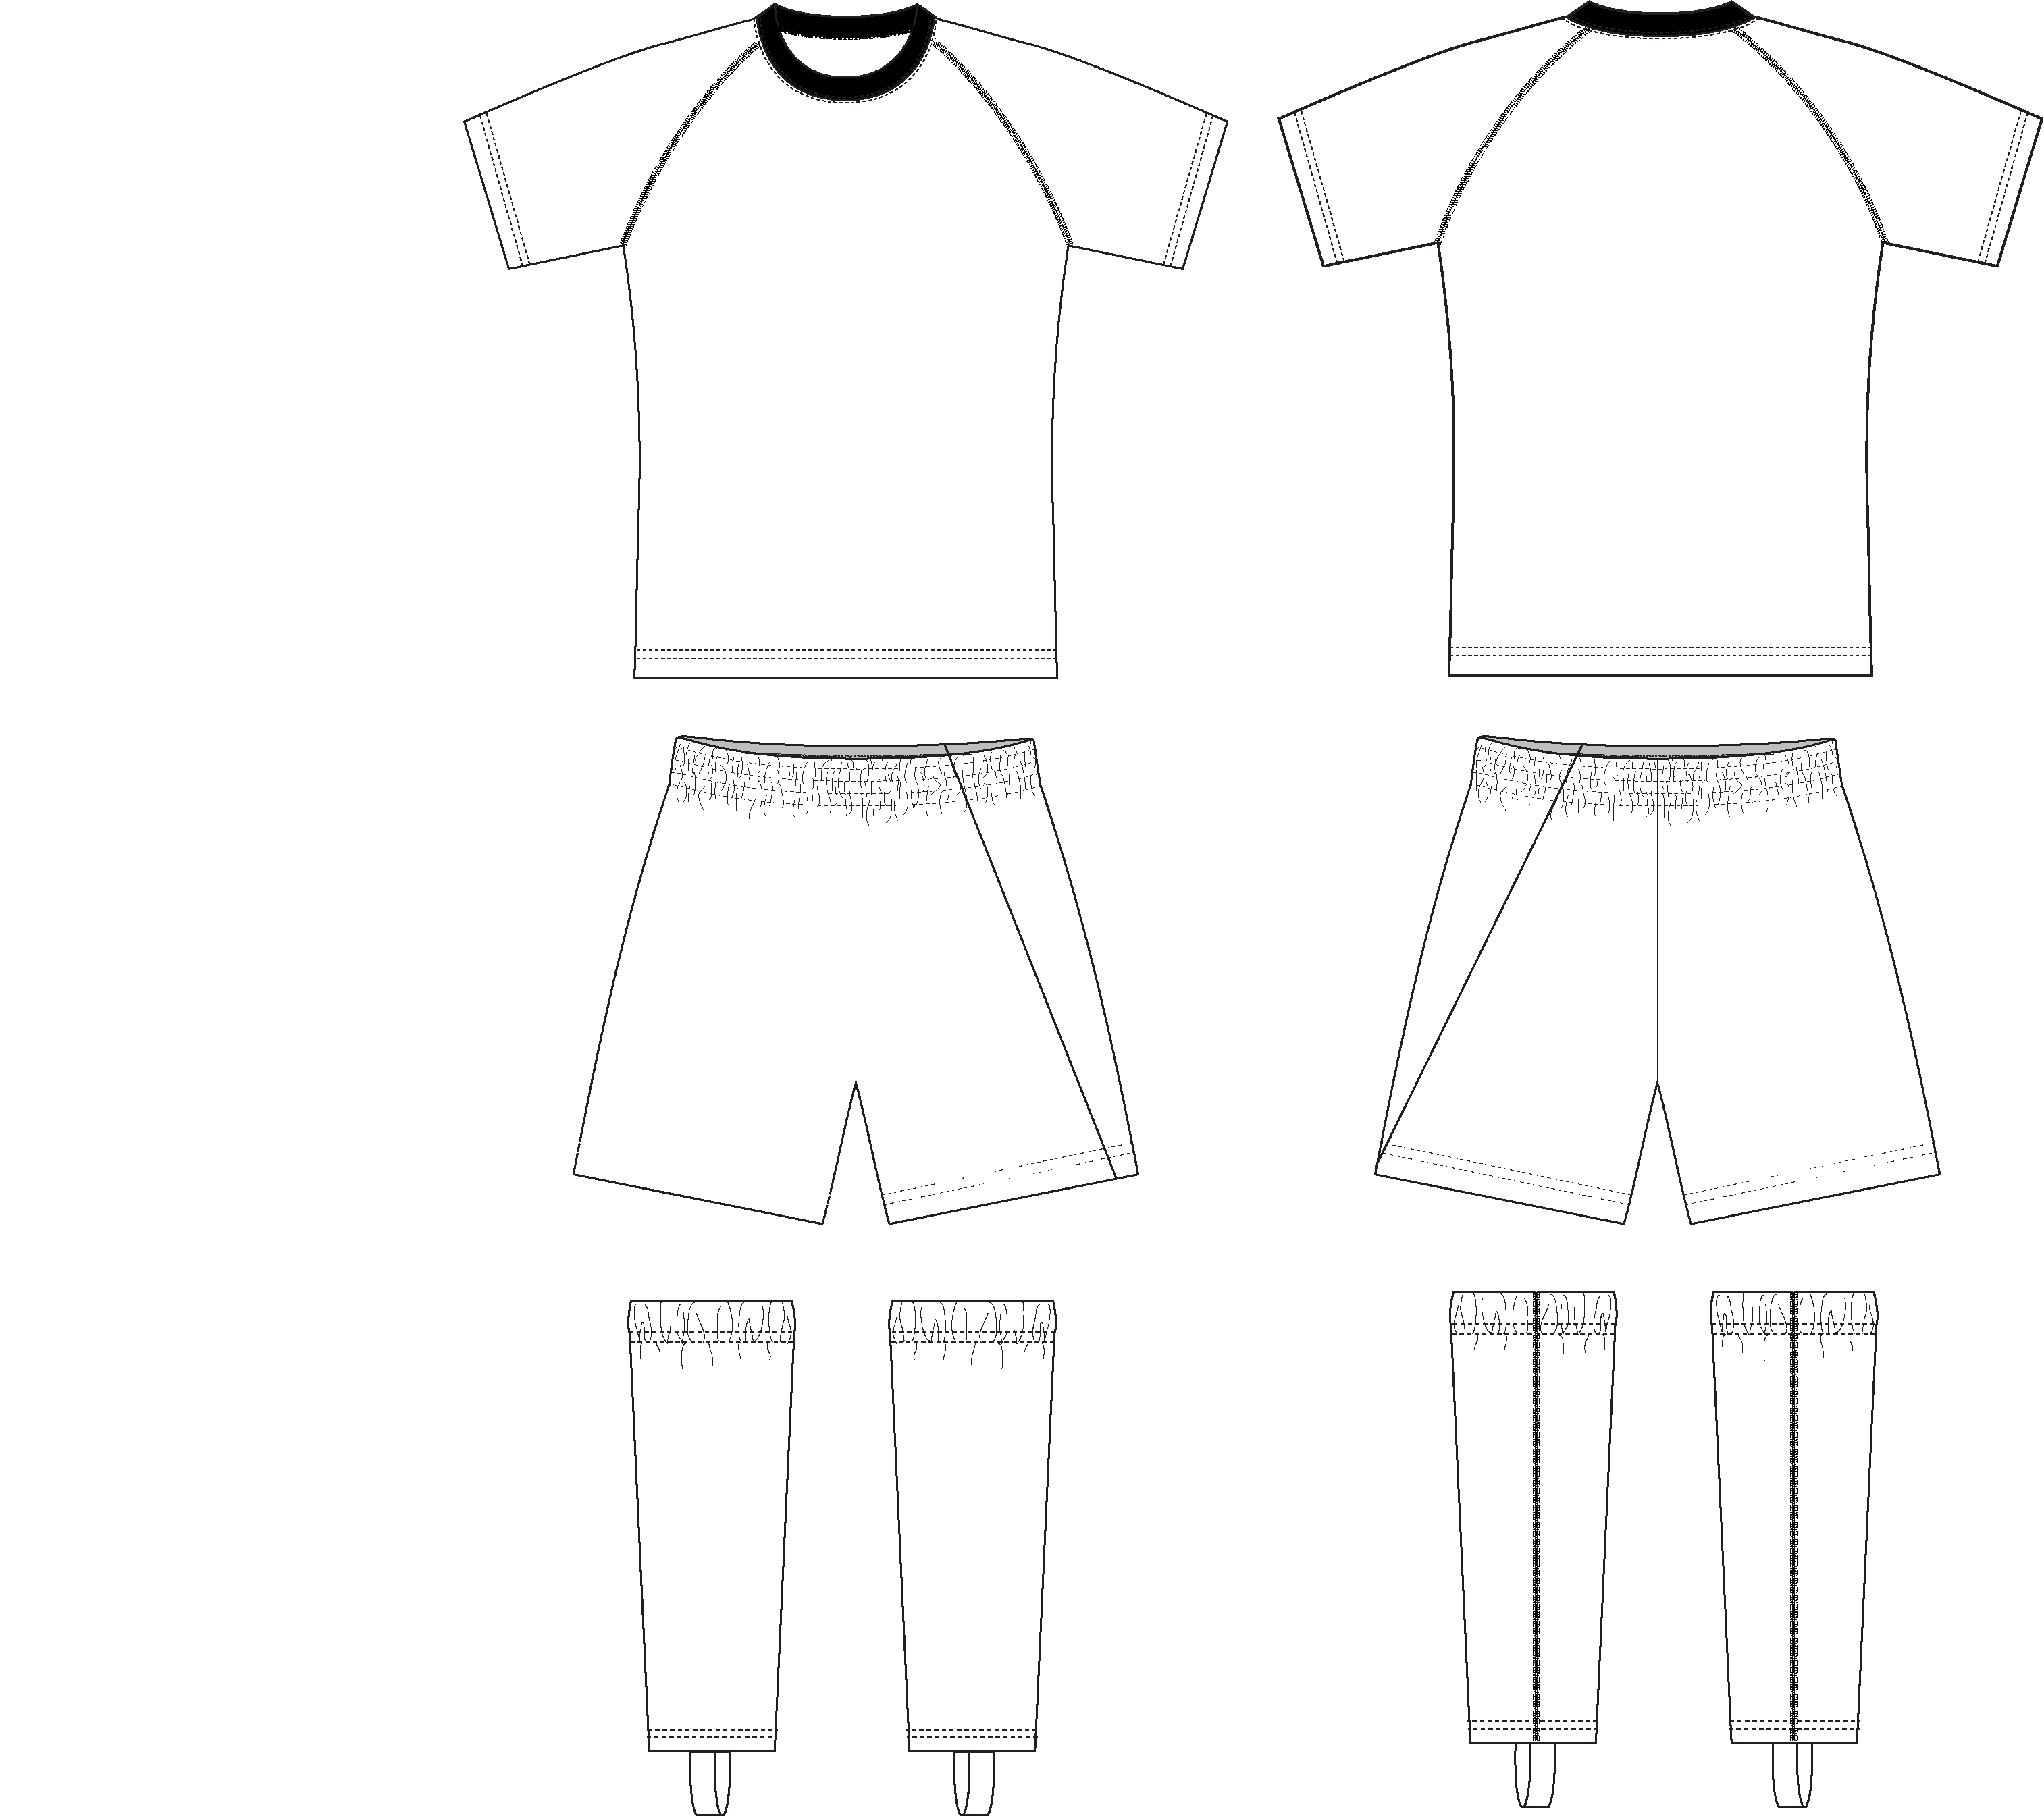 USA Rugby Club Custom Uniform Template  Any Design, Any Color, Any